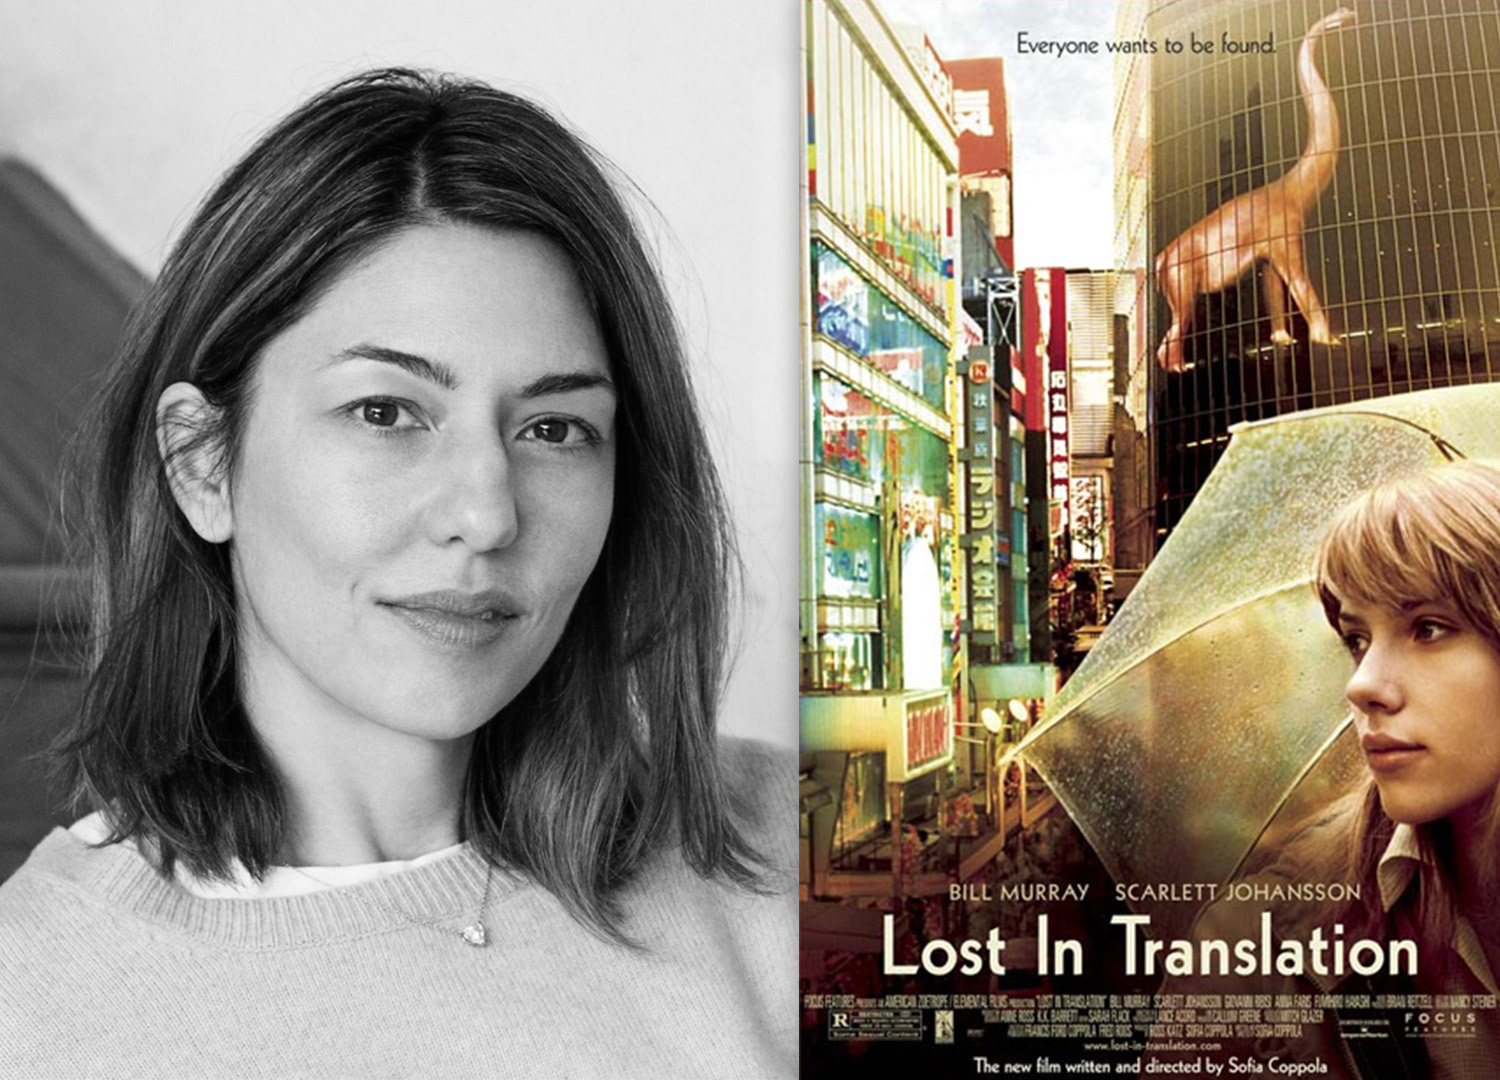 CINOSOPHY: Film with meaning Lost in Translation, directed by Sofia Coppola